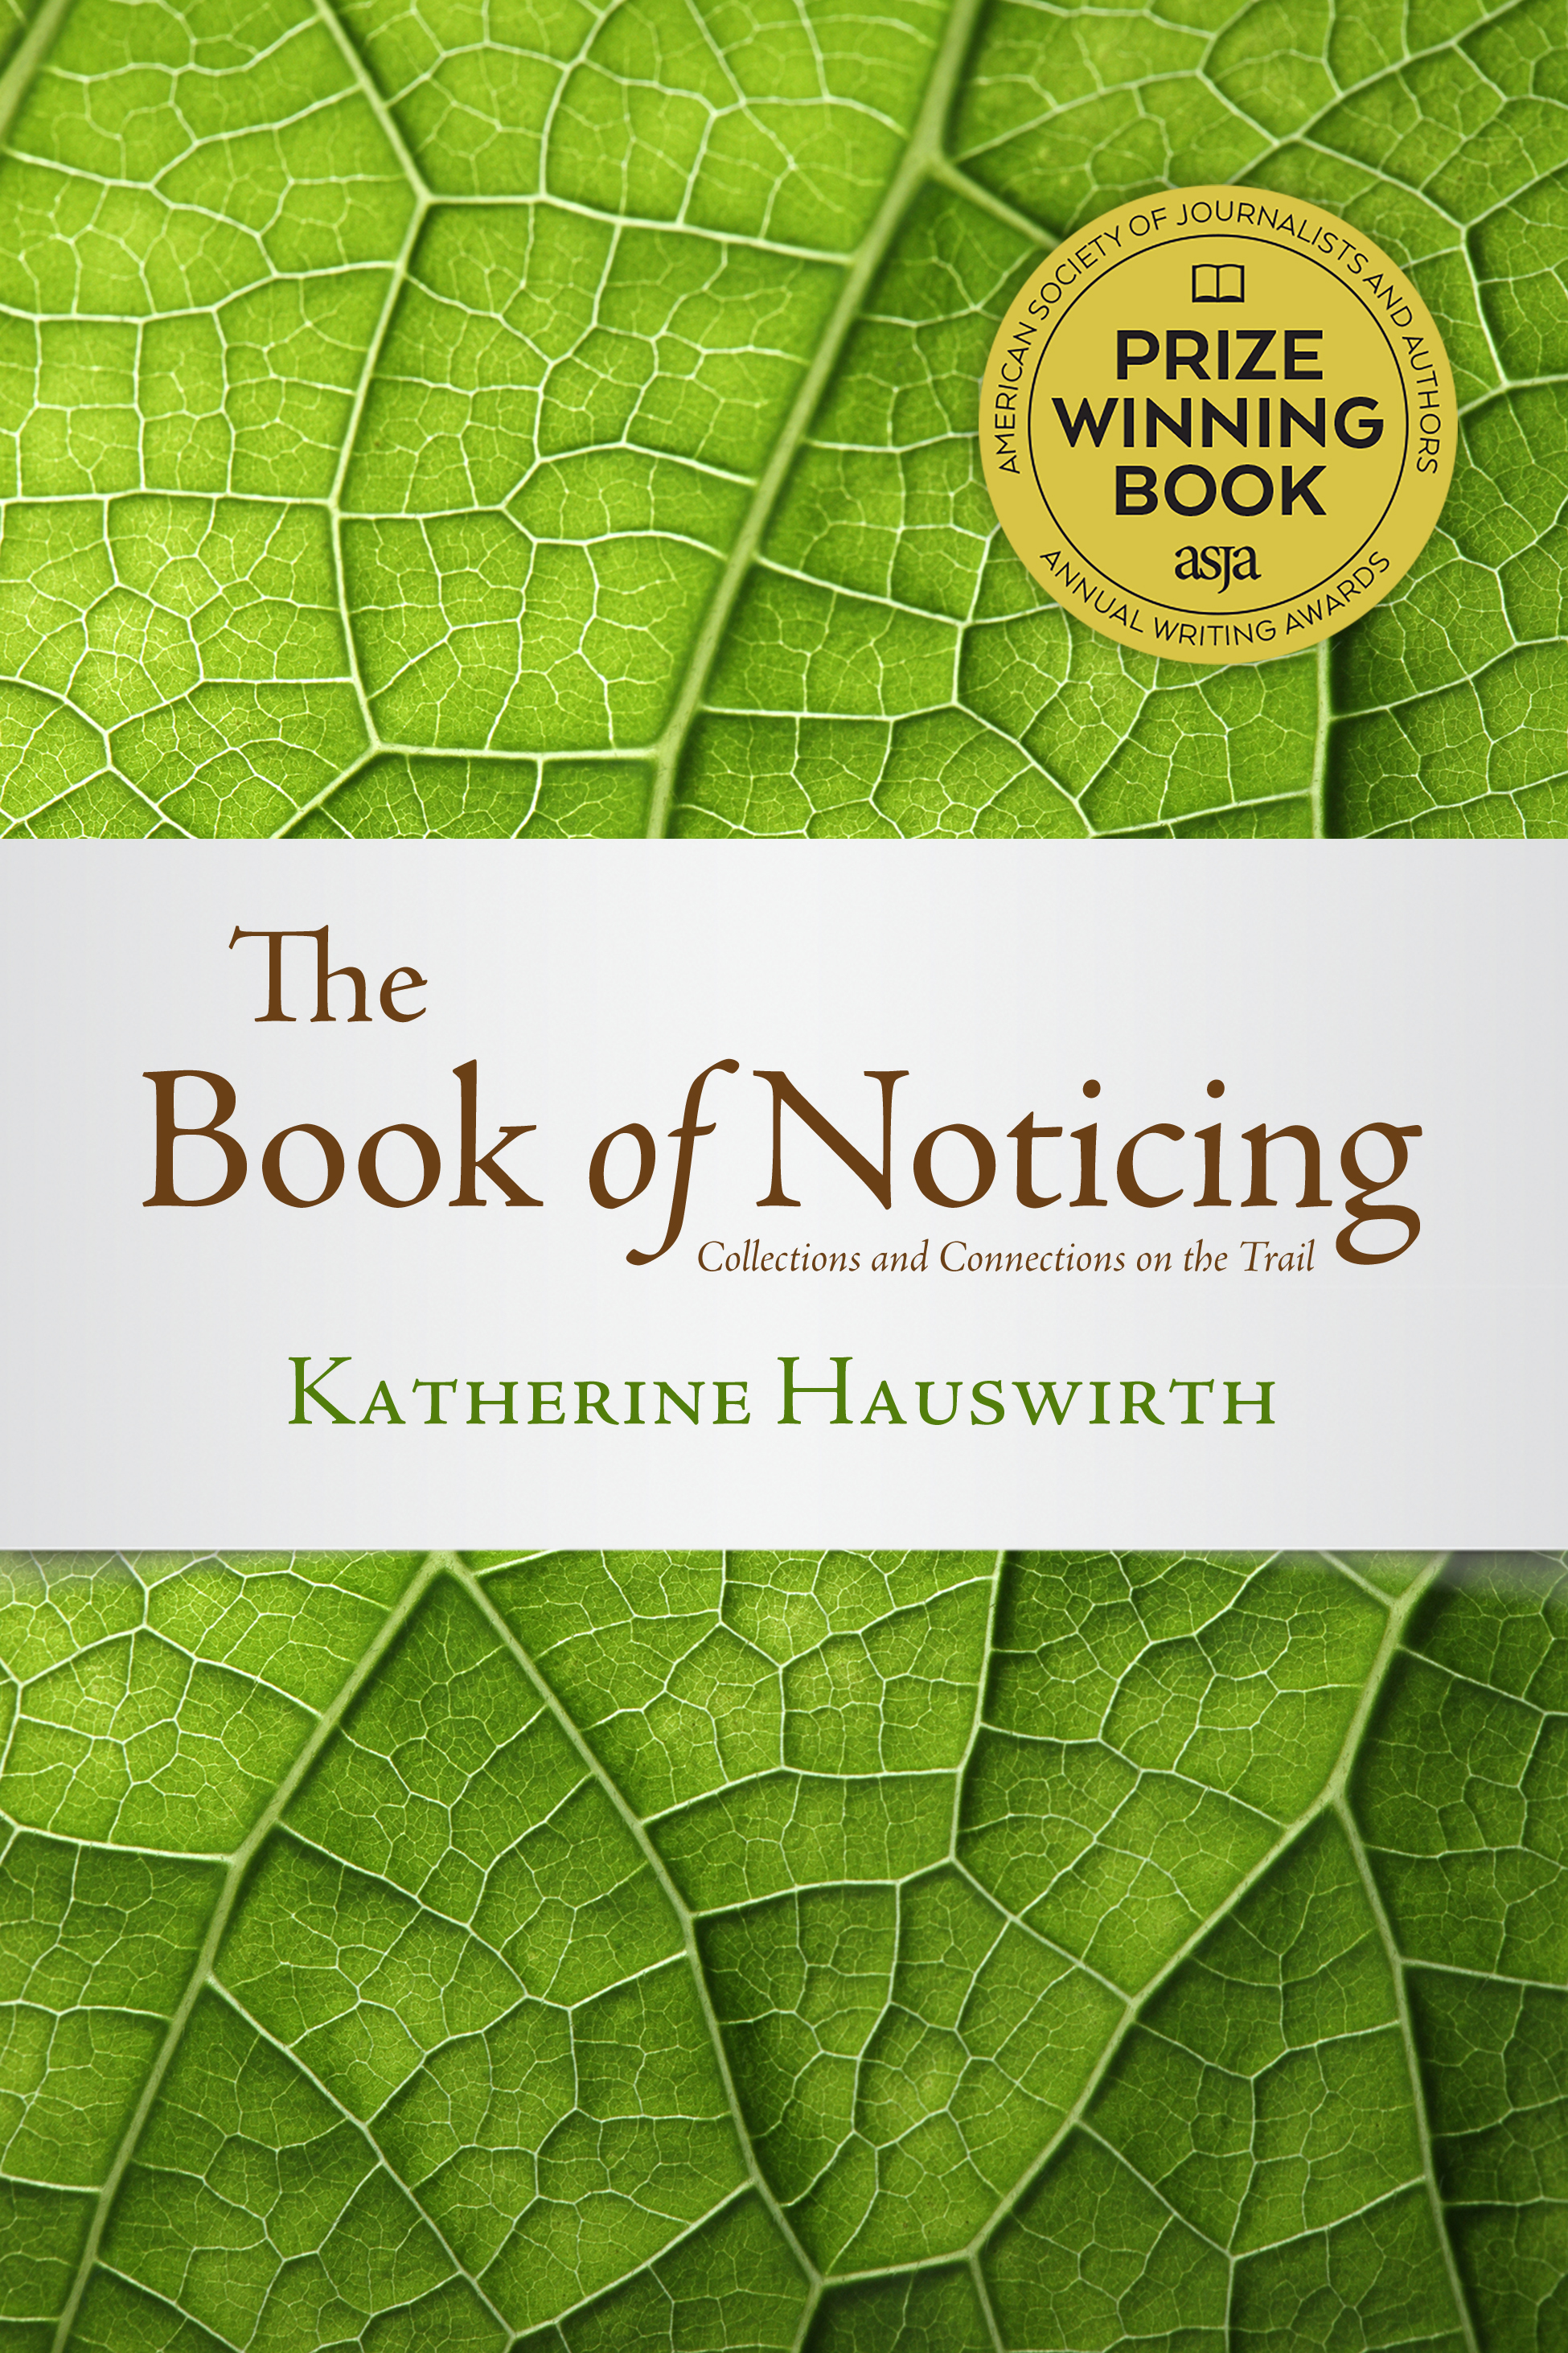 The Book of Noticing